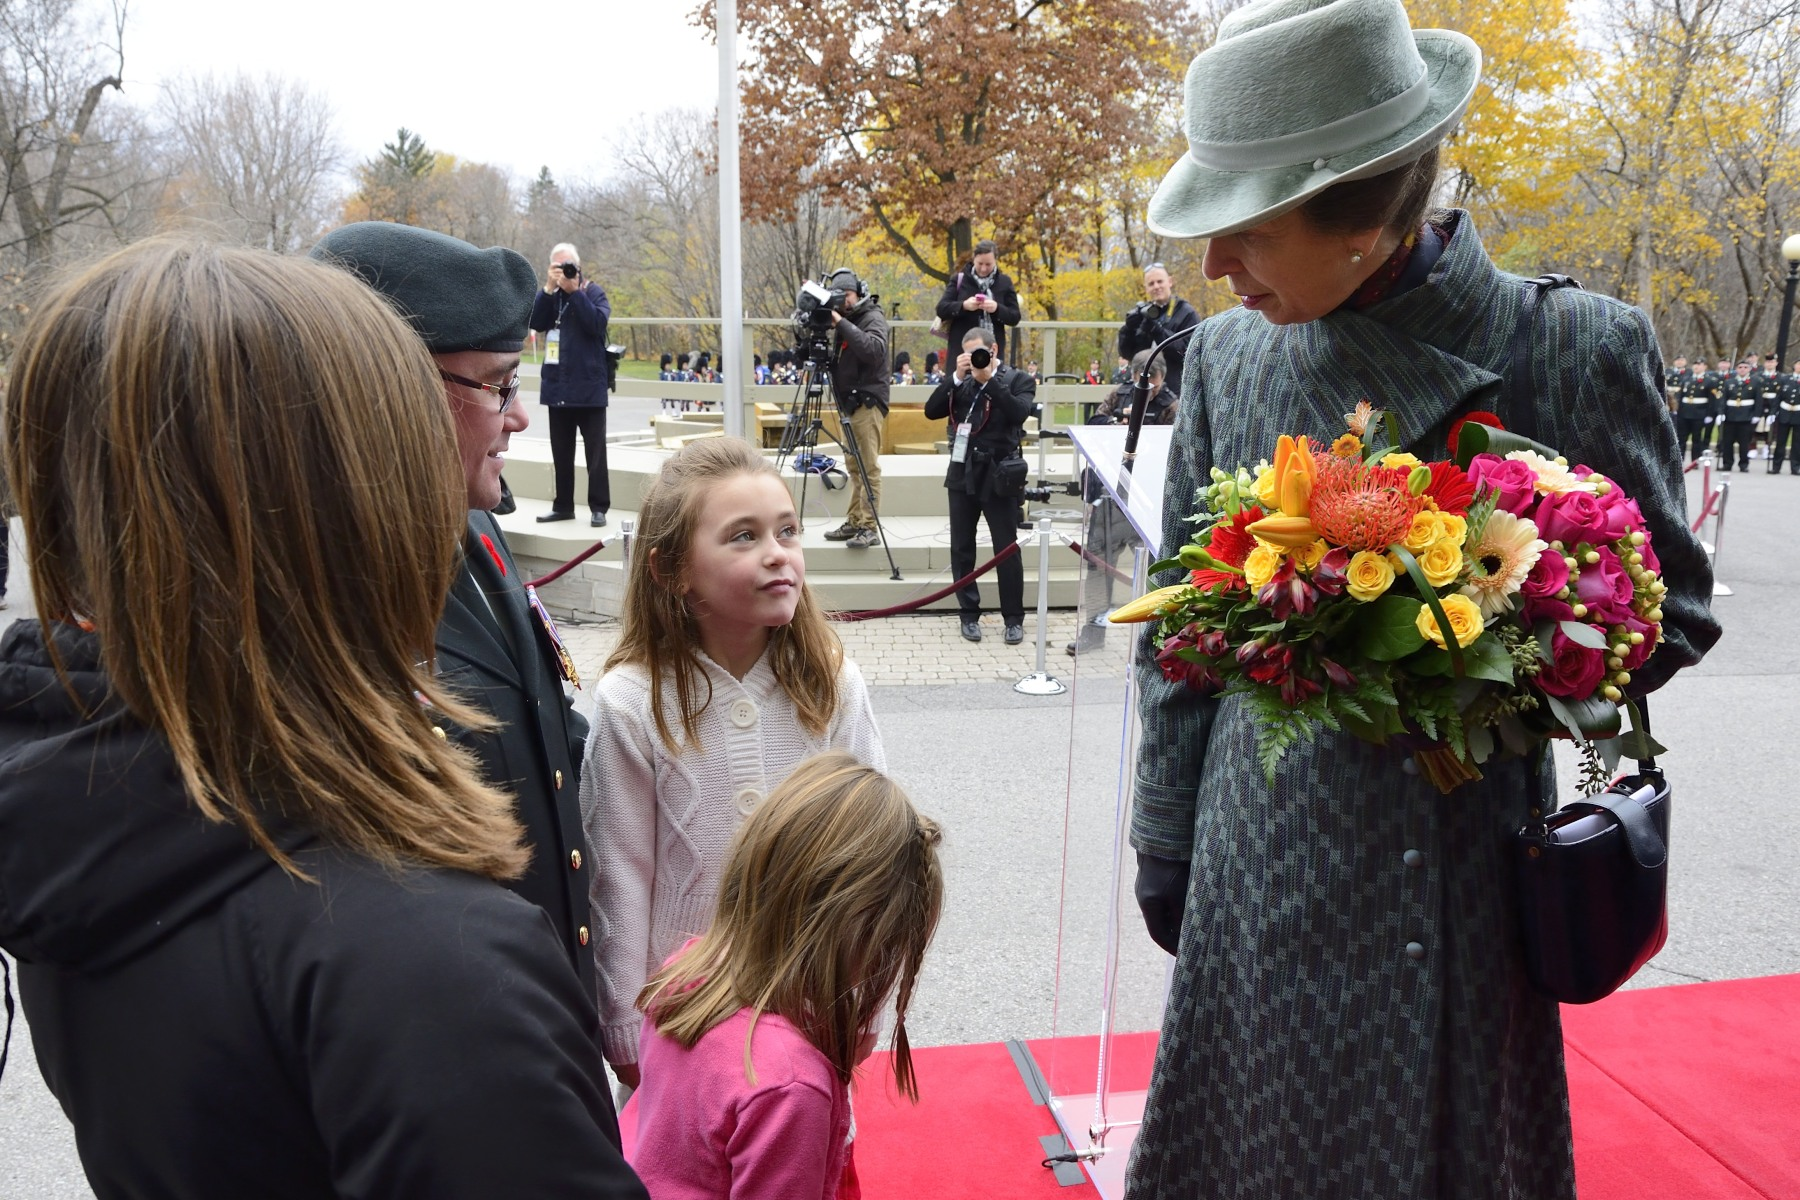 Flowers were given to Her Royal Highness by Memphis Zopf (7 years old) and Mylee Zopf (4 years old). Memphis and Mylee are the daughters of Sgt Chad Zopf, a Canadian Armed Forces Communication signaller from Regina, Saskatchewan. The family currently lives in the Ottawa Region.